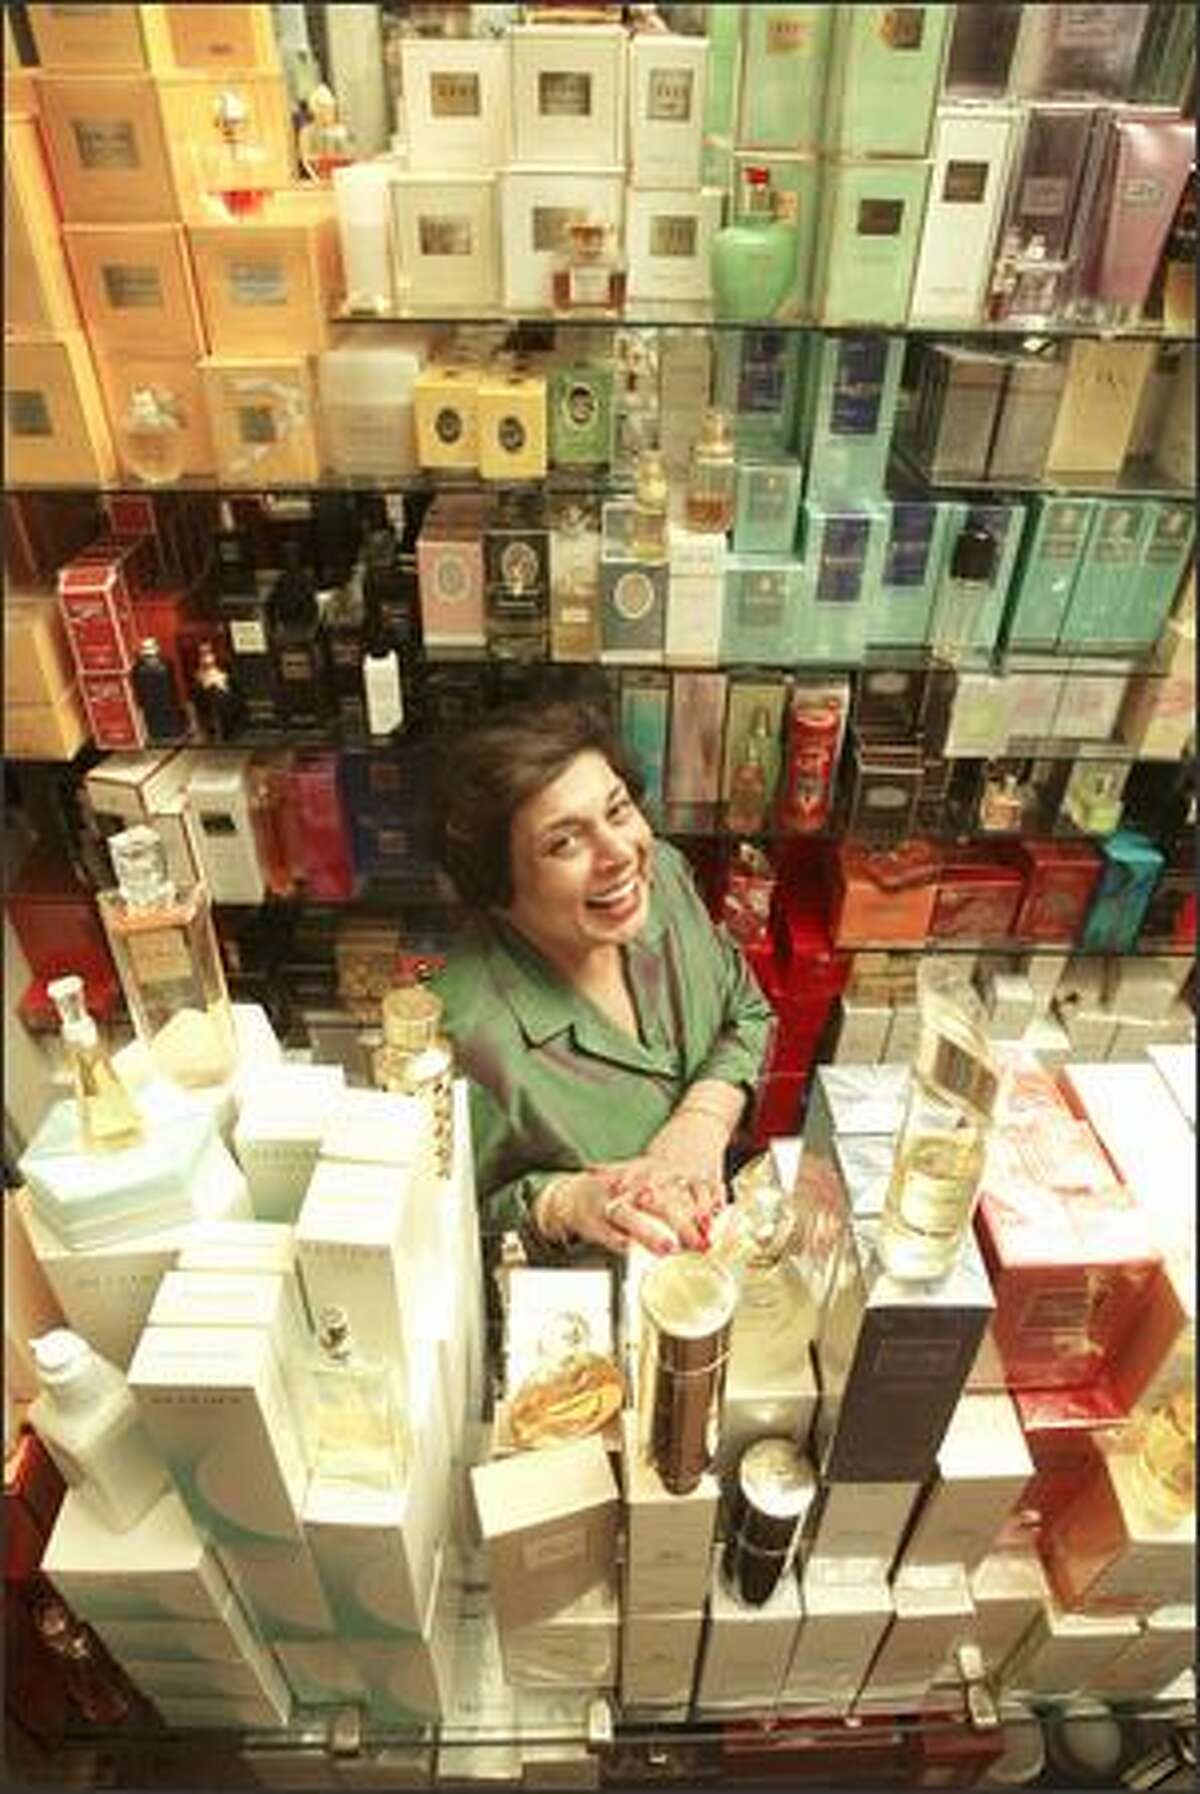 Nasreen Rehmat, owner of Parfumerie Nasreen in the Alexis Hotel, stocks 780 scents in her 300-square-foot store. She's been in the business for 20 years and has a knack for selecting the right scent for her clients.